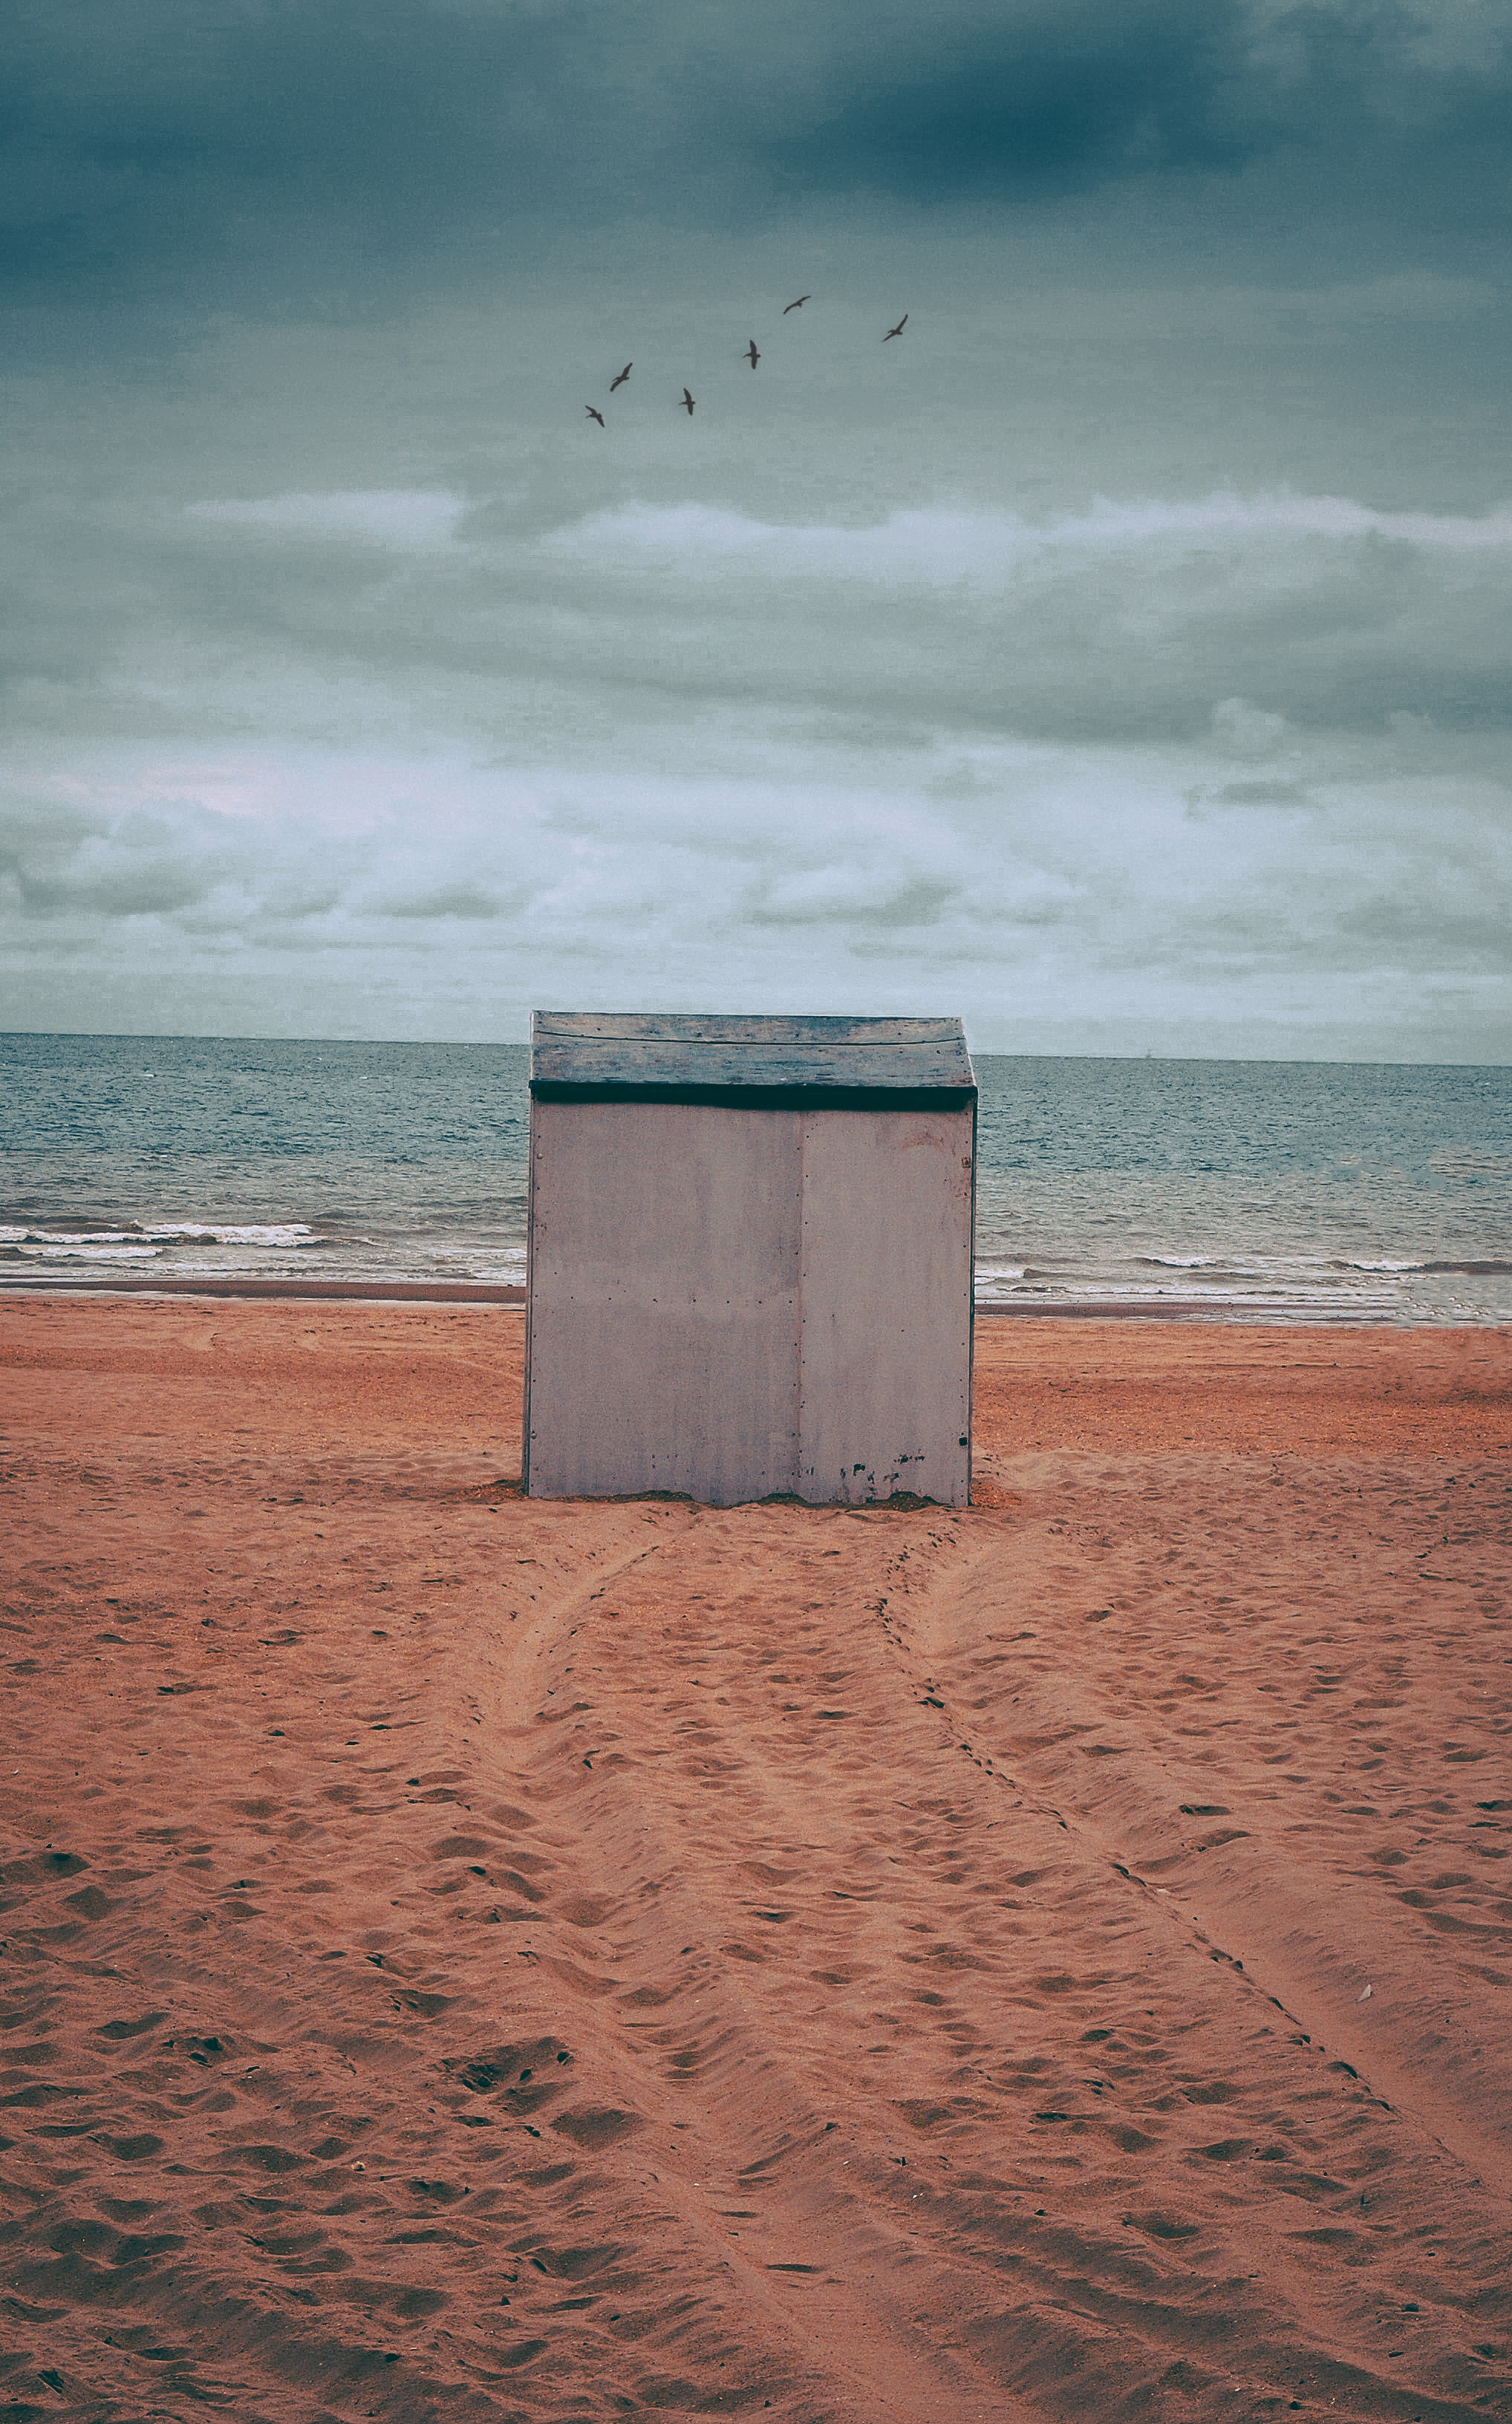 Gray Storage Shed on Brown Sand, Beach, Sea, Water, Vacation, HQ Photo